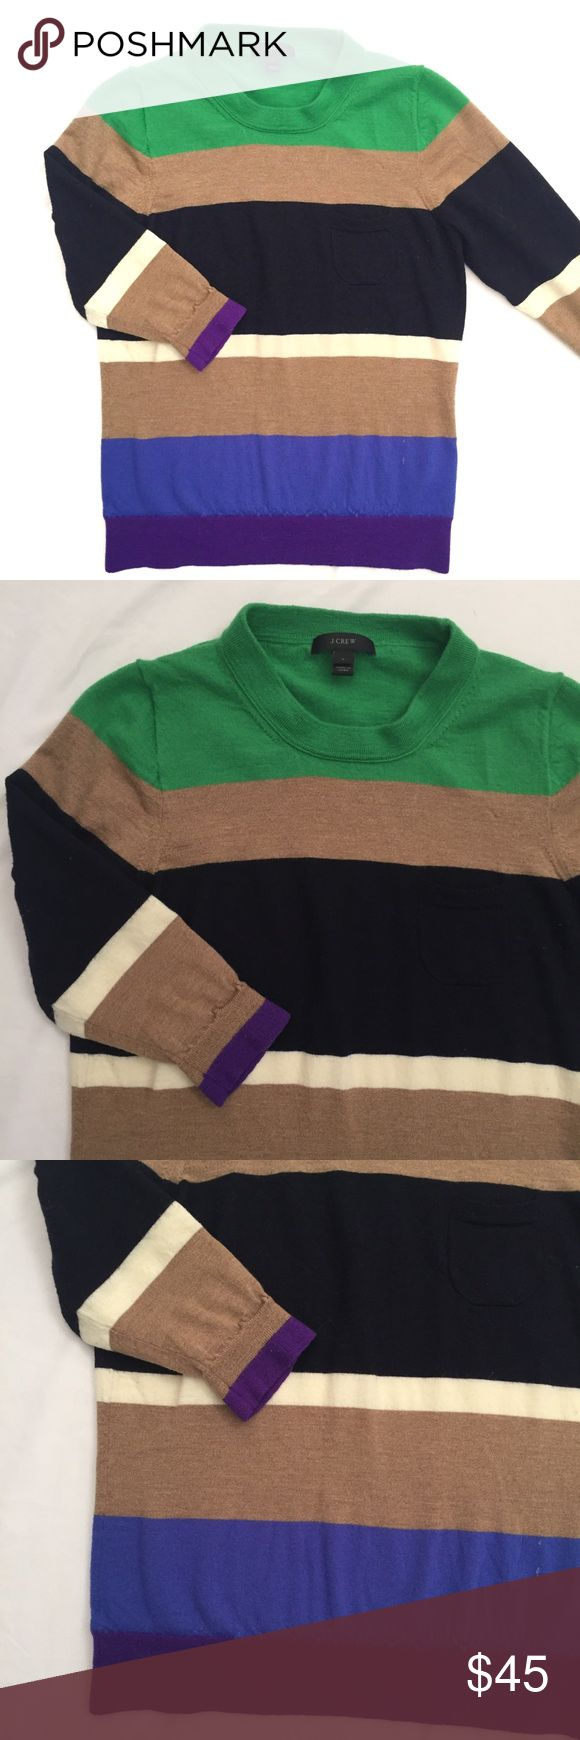 """J. Crew striped color block crew neck sweater This is a great sweater with varying shapes and shades of stripes. Goes great with a collared shirt underneath paired with jeans or dress slacks.  Measurements laying flat:  * Bust 18"""" * Length 23"""" * Arm 17"""" (elbow length)  Condition/Flaws * Gently used, but still in excellent condition * No significant flaws (stains, rips, pilling)  Item # * RS114.31217 J. Crew Sweaters Crew & Scoop Necks"""